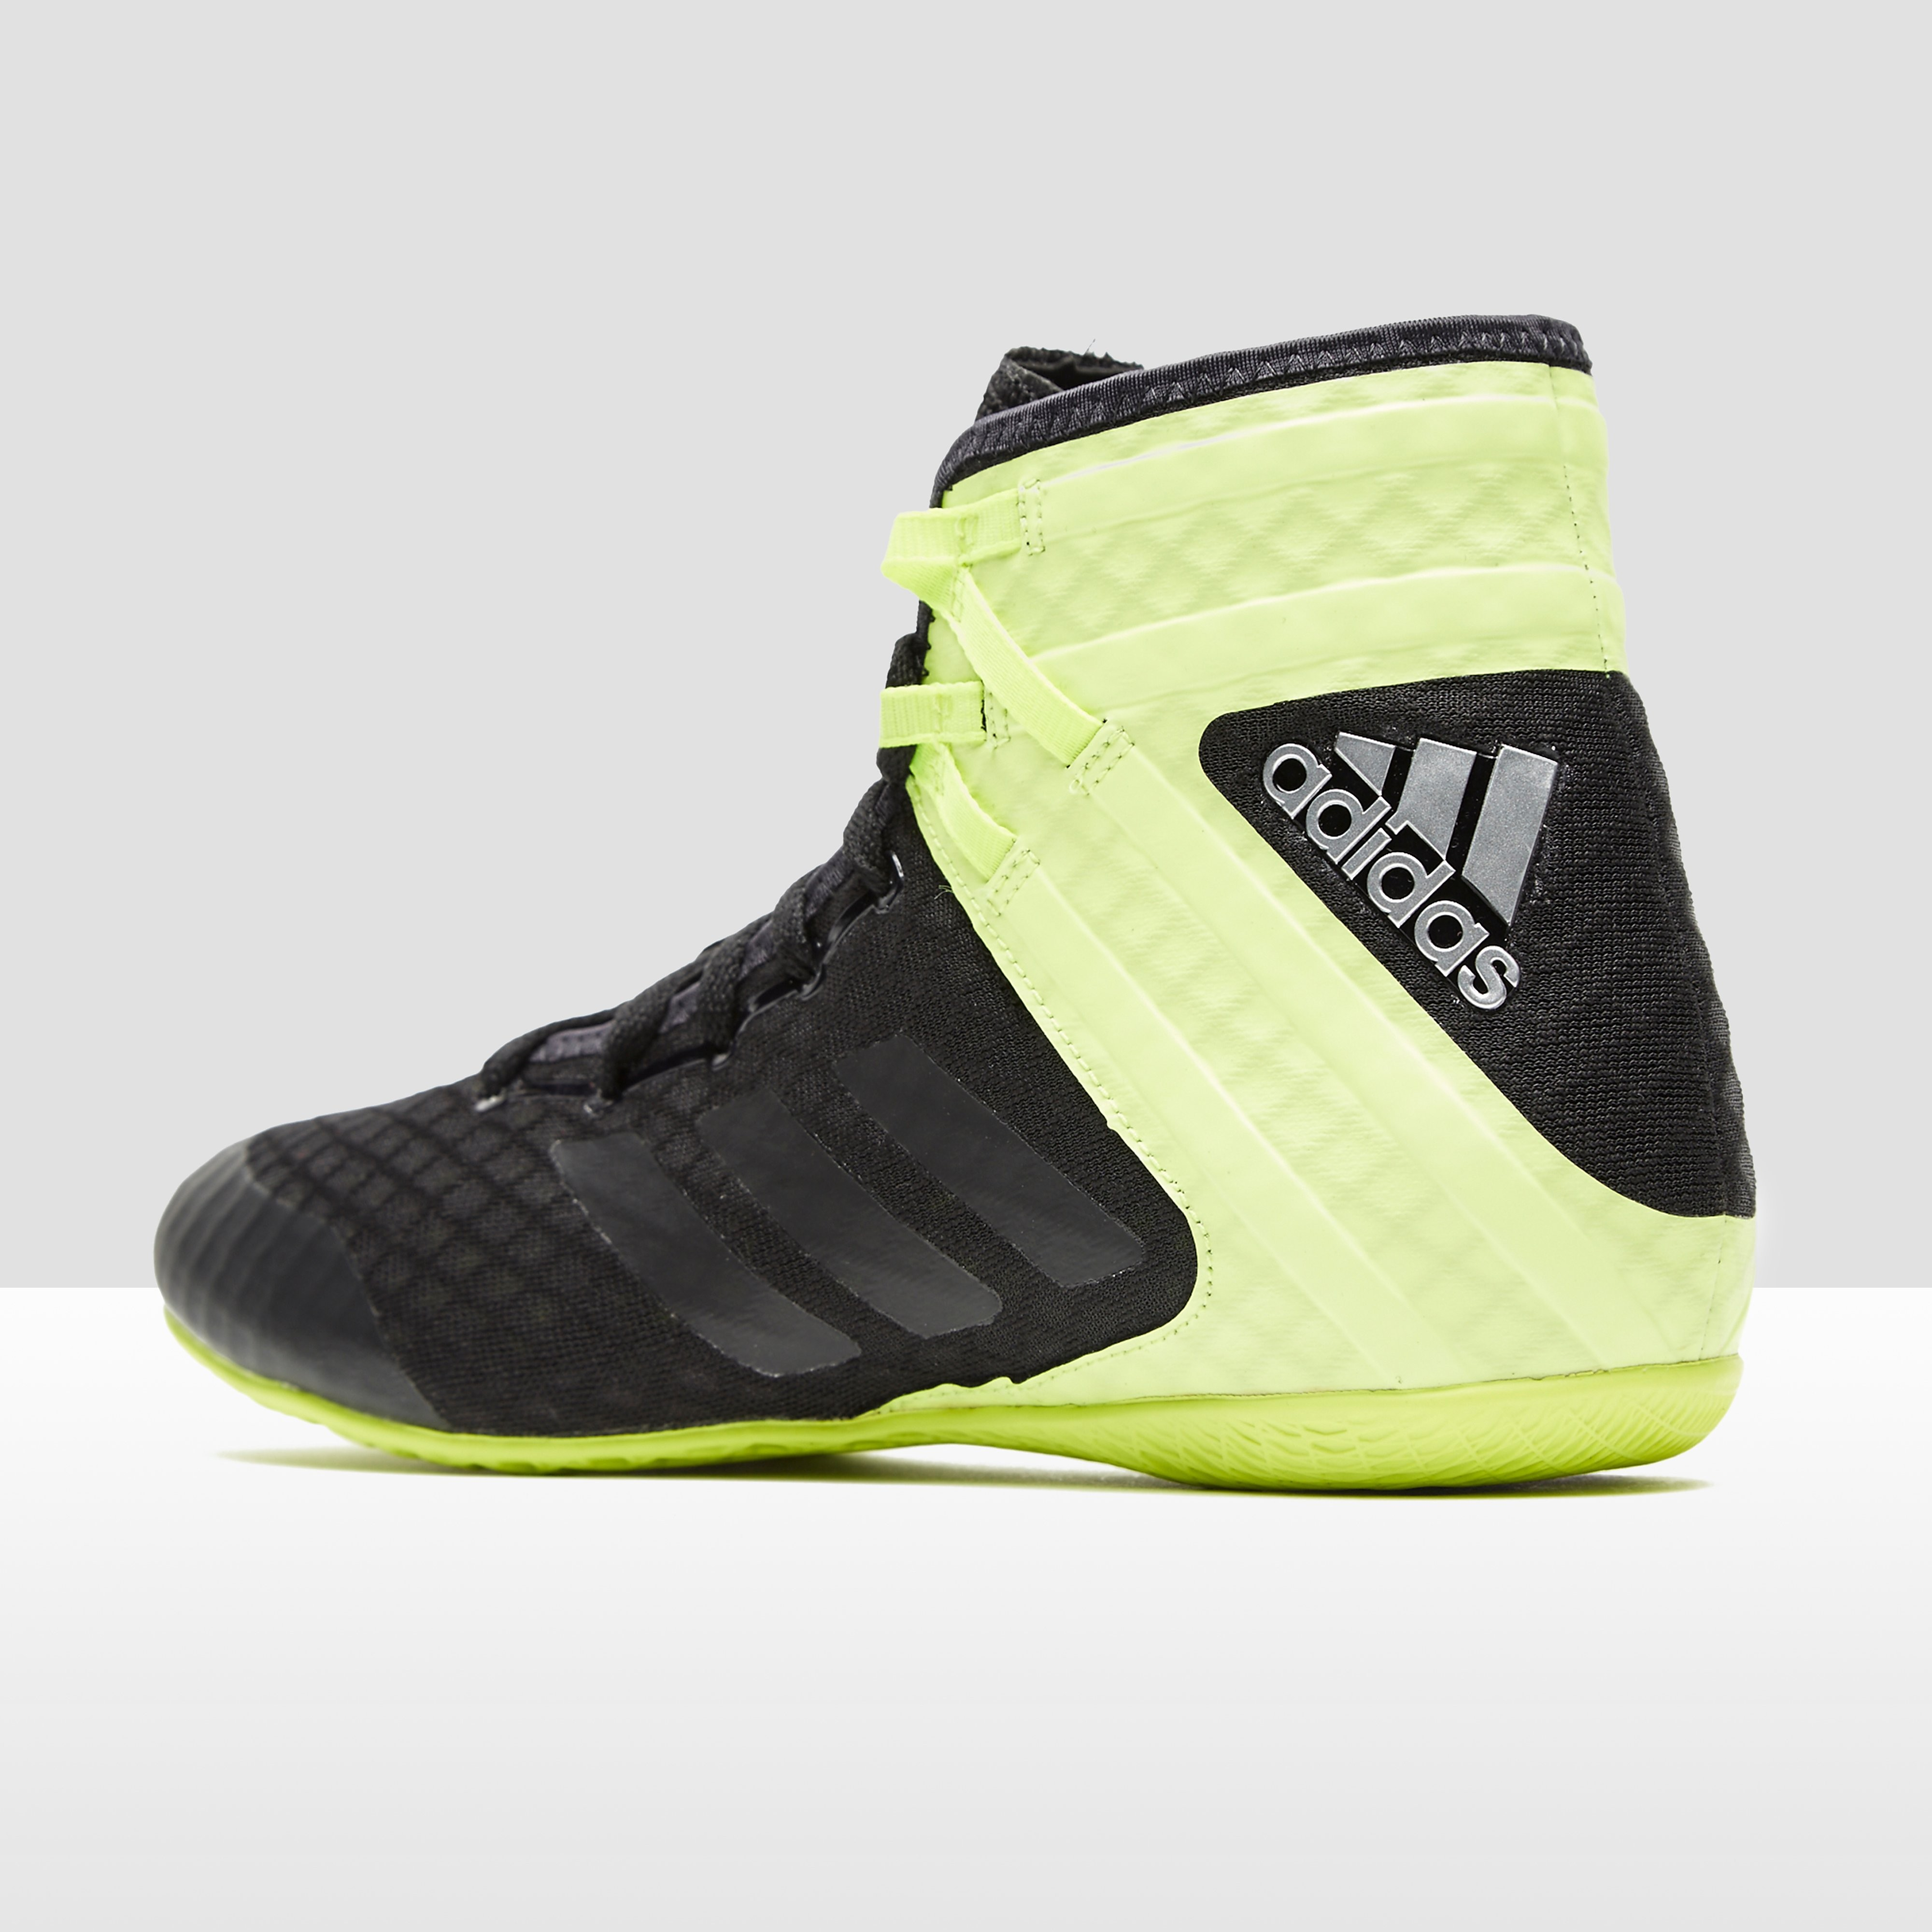 adidas Speedex 16.1 Men's Boxing Shoes